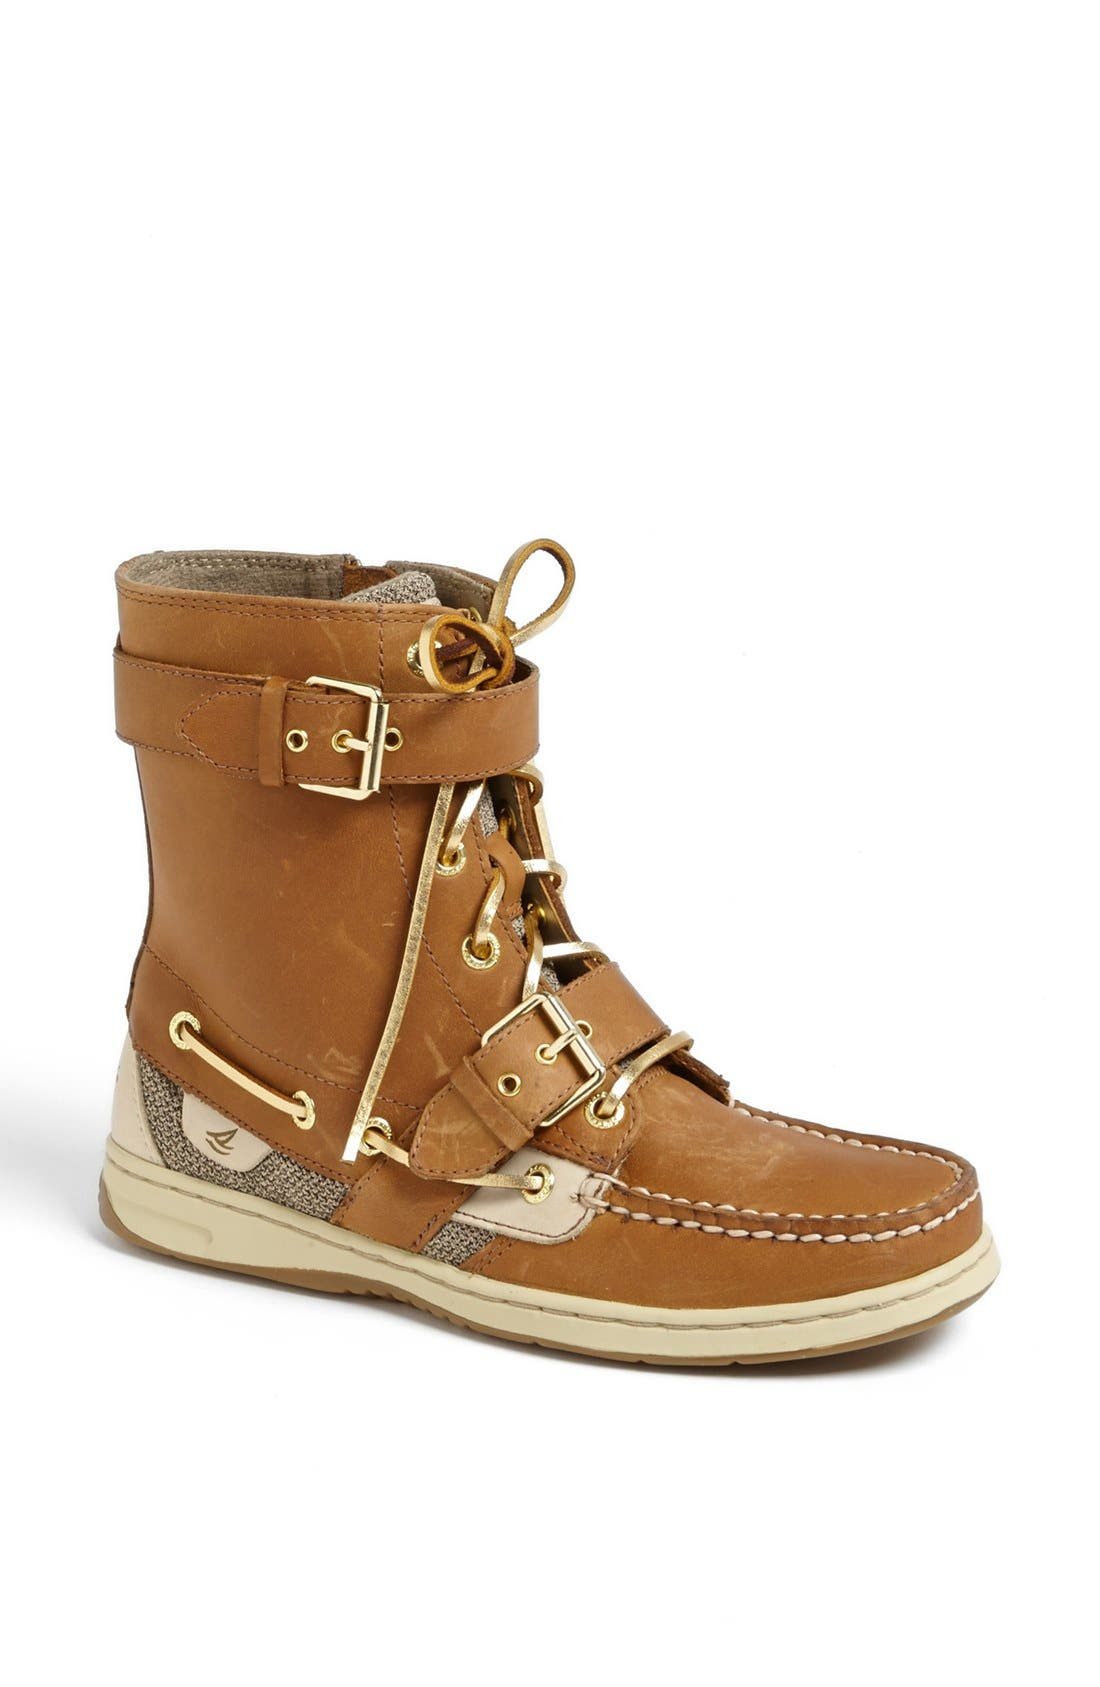 Main Image - Sperry Top-Sider® 'Huntley' Boot